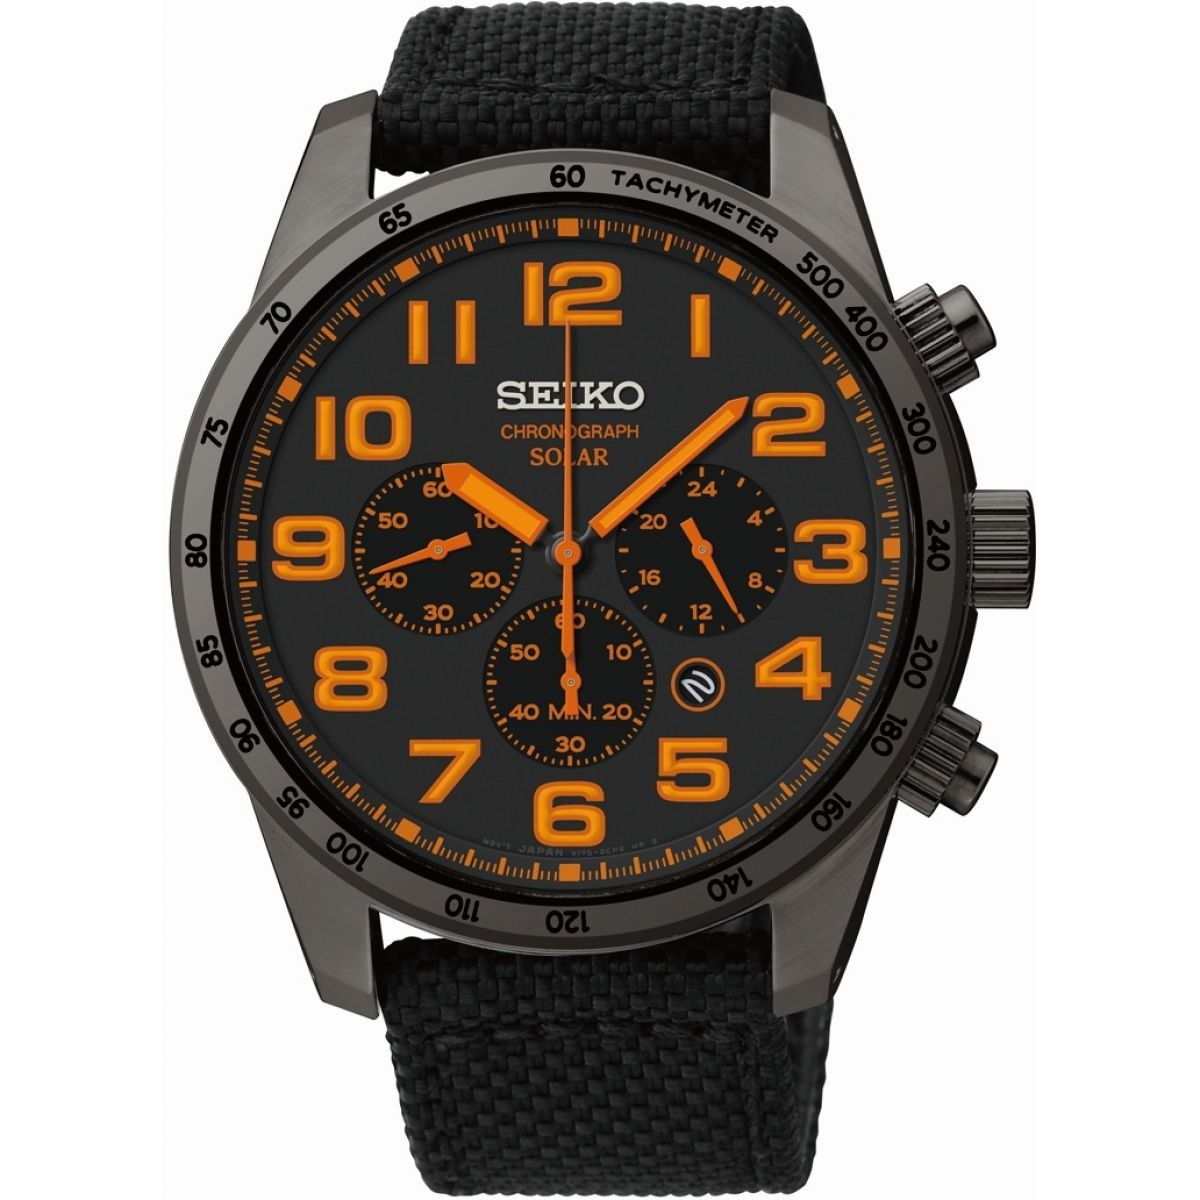 seiko self product steel accent hei men jsp sharpen wid stainless op watch ion solar watches prd black powered diamond s